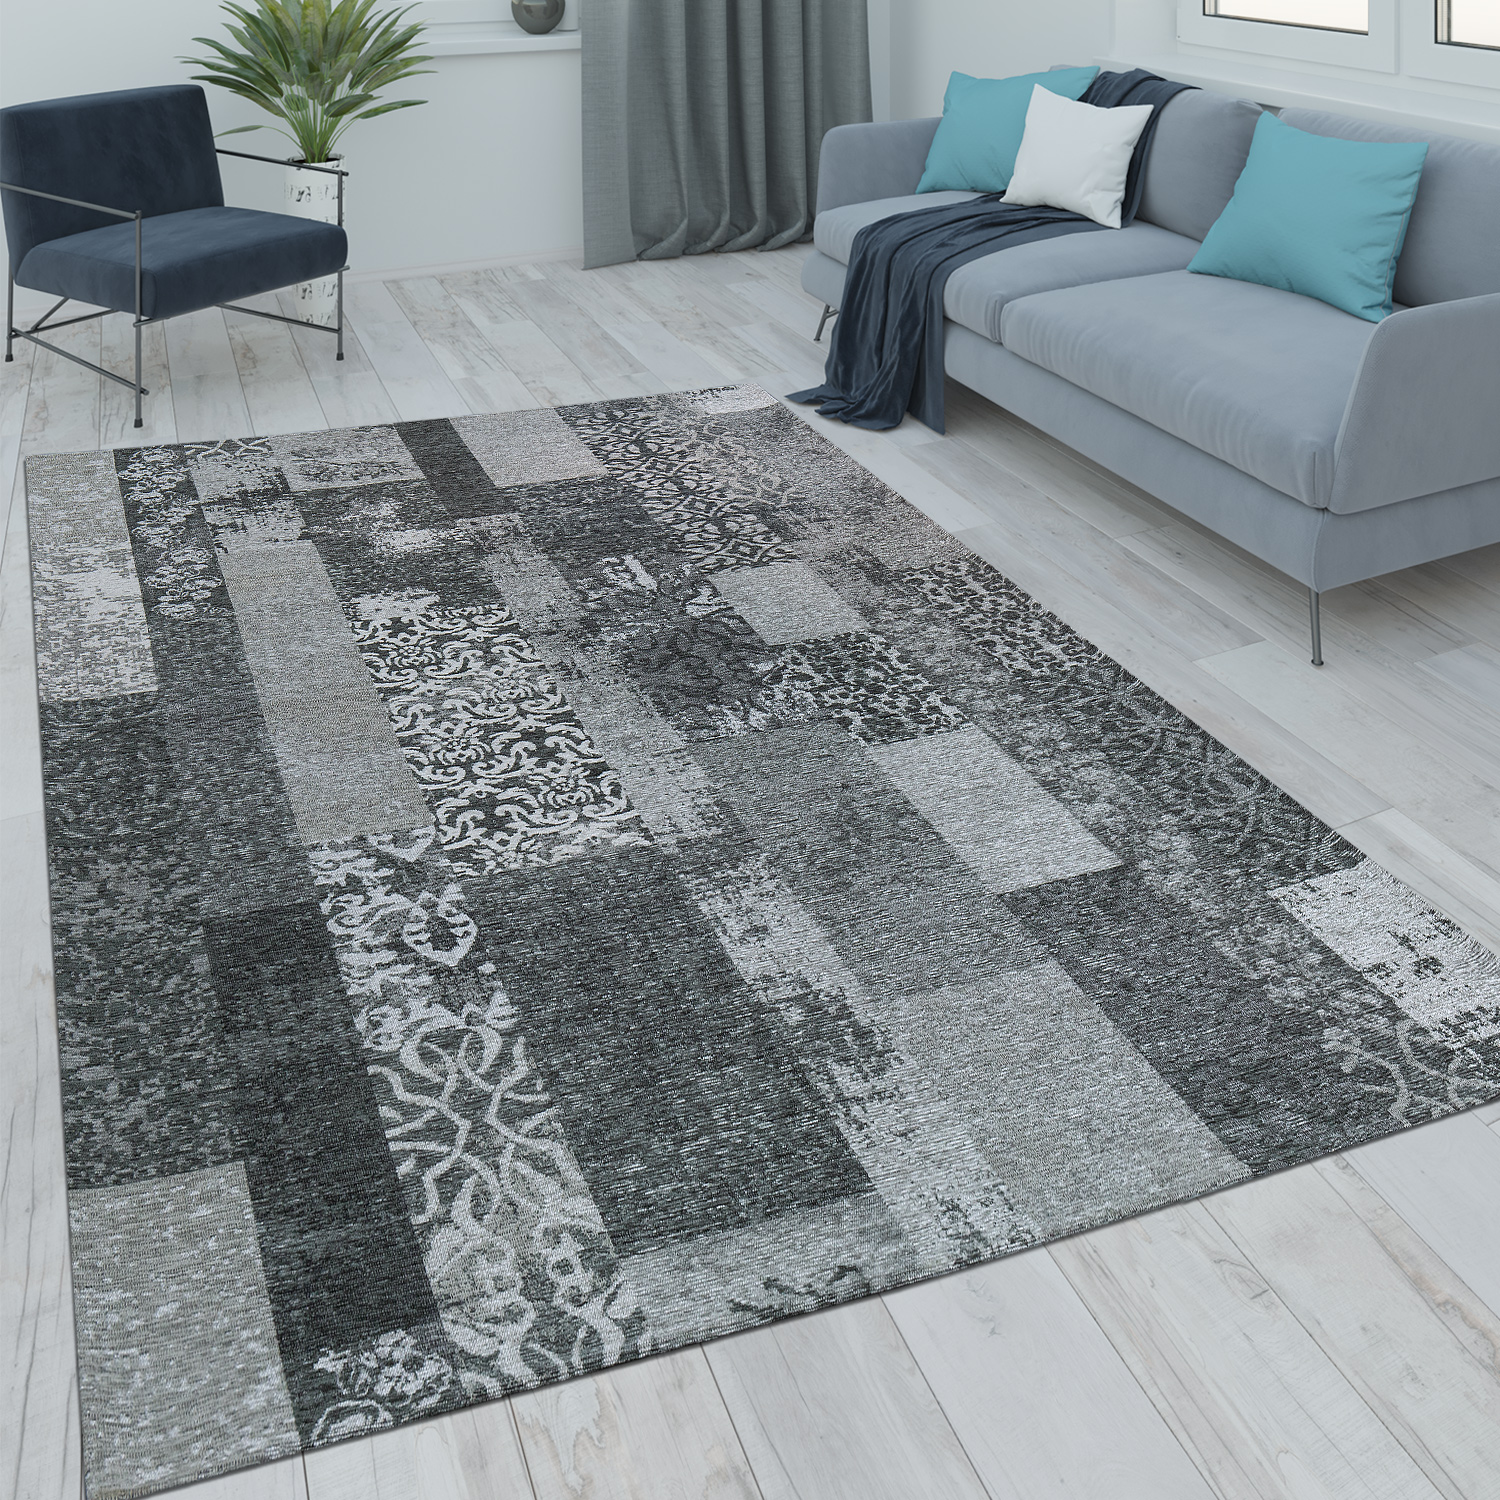 Tappeti Vintage Patchwork Tappeto Patchwork Aspetto Vintage Grigio